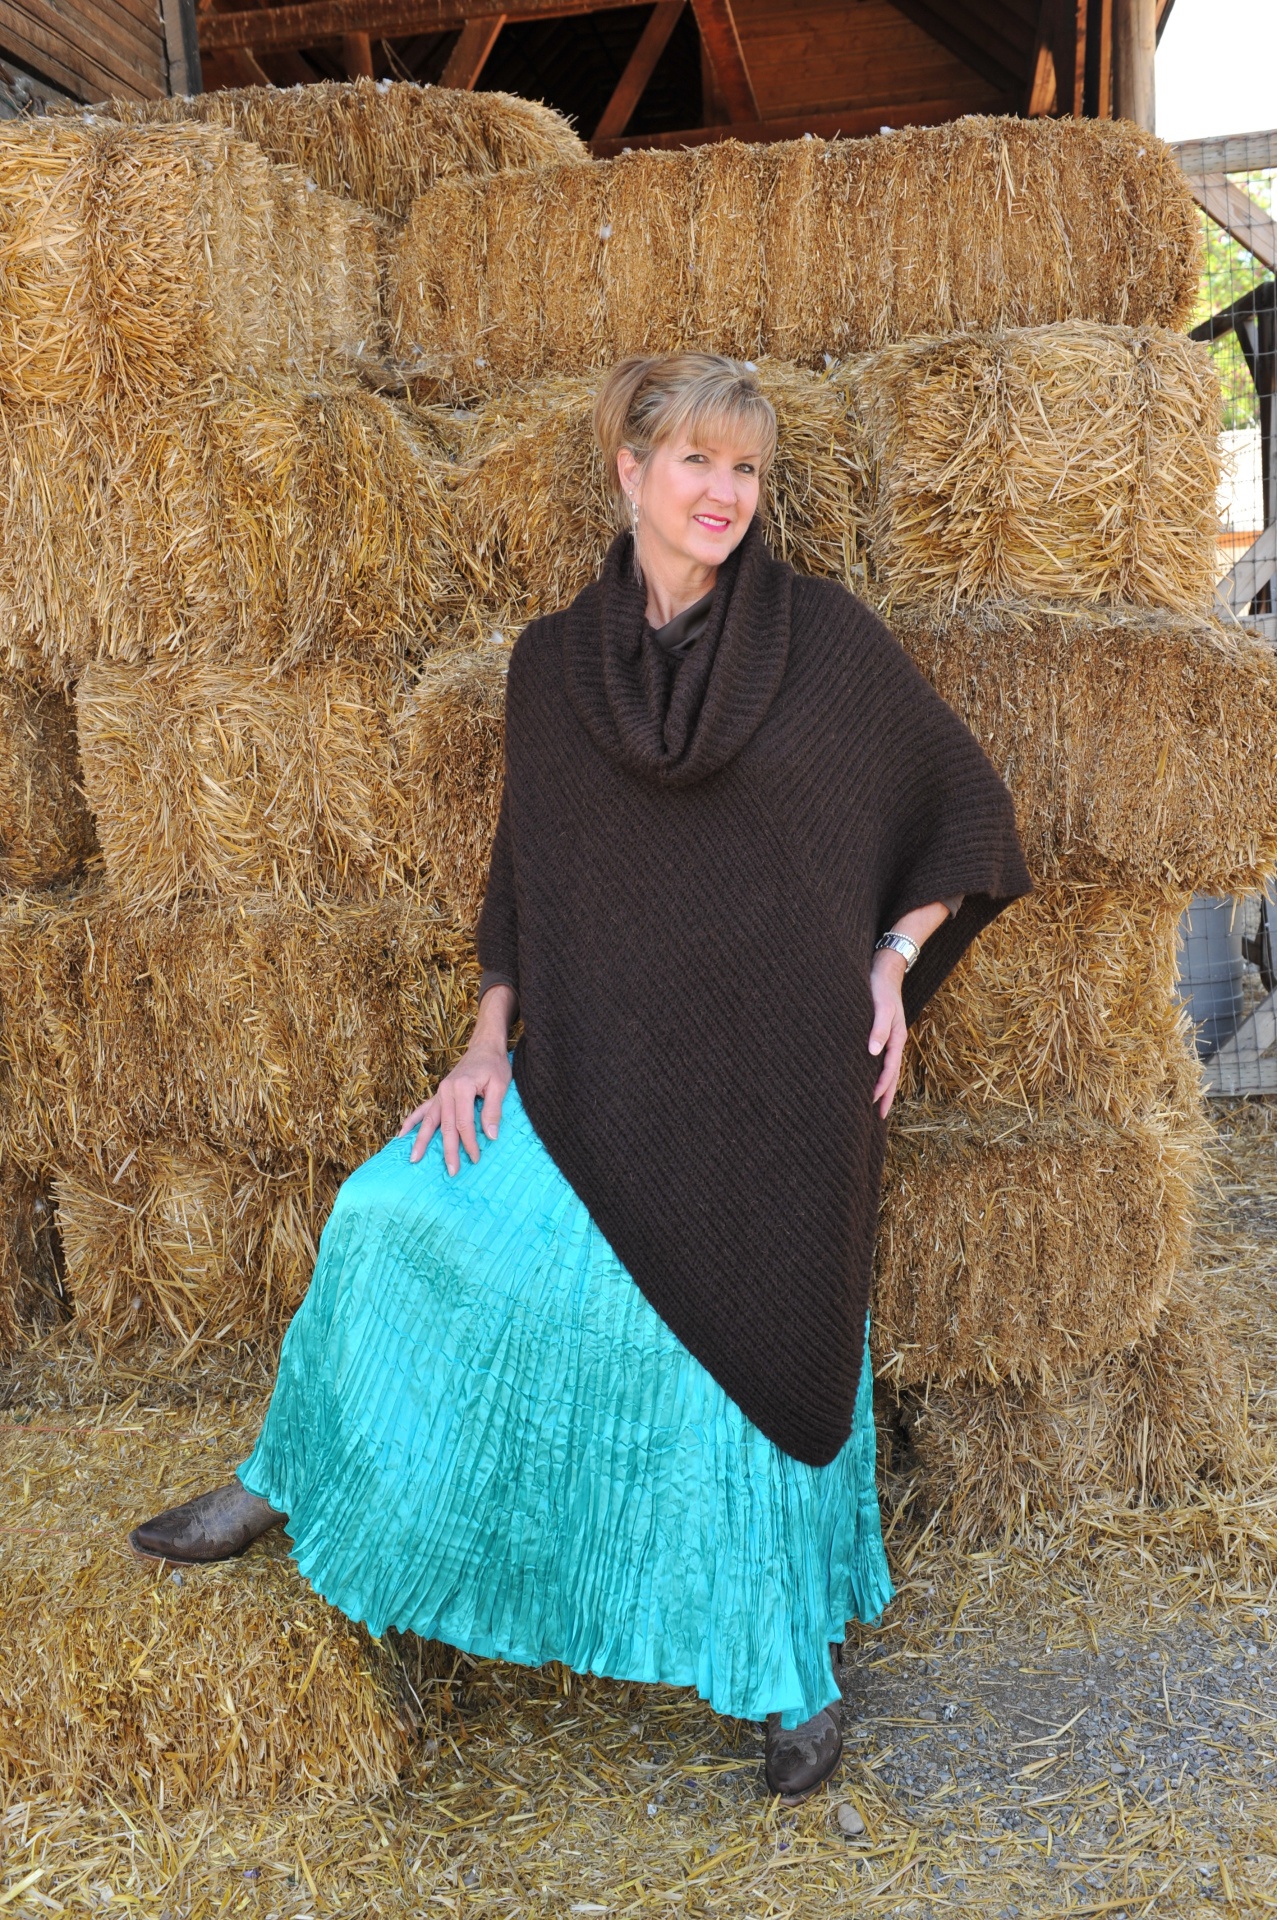 #K215CB - CHOCOLATE BROWN ITALIAN KNIT COWL PONCHO - $99.95 ONE SIZE -- OUTLET SALE $35.00